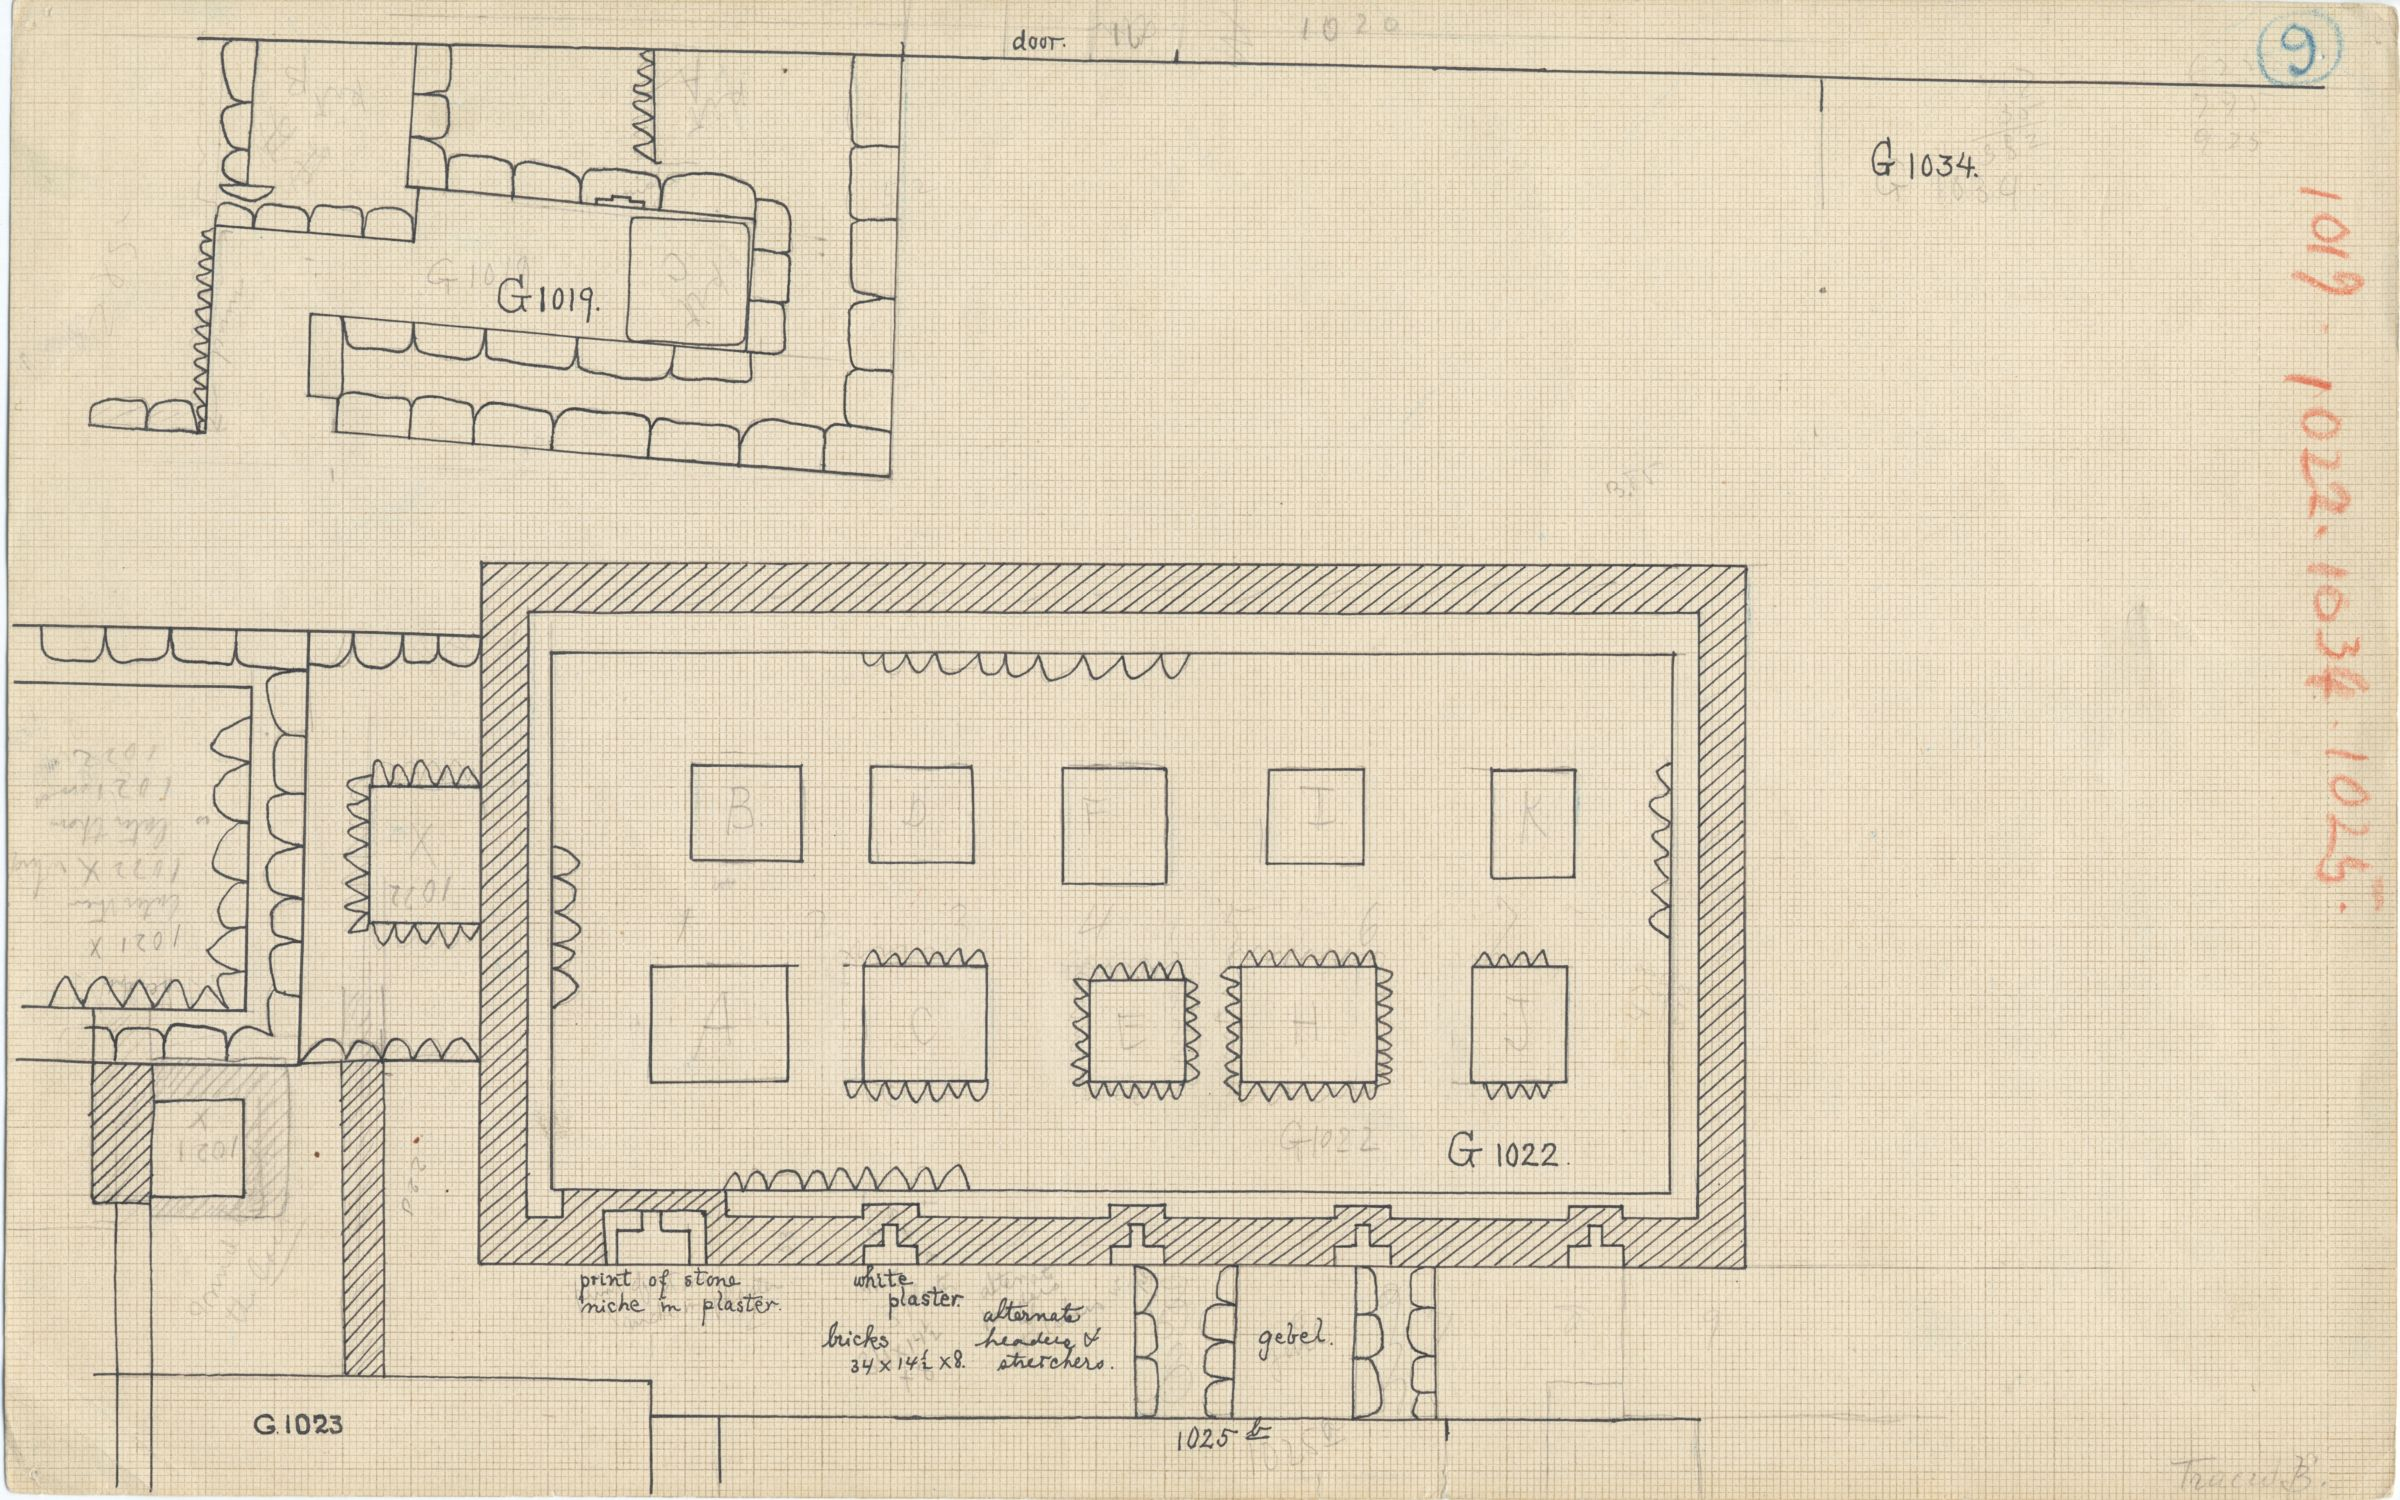 Maps and plans: Plan of G 1019 and G 1022, with position of G 1020, G 1021, G 1023, G 1025